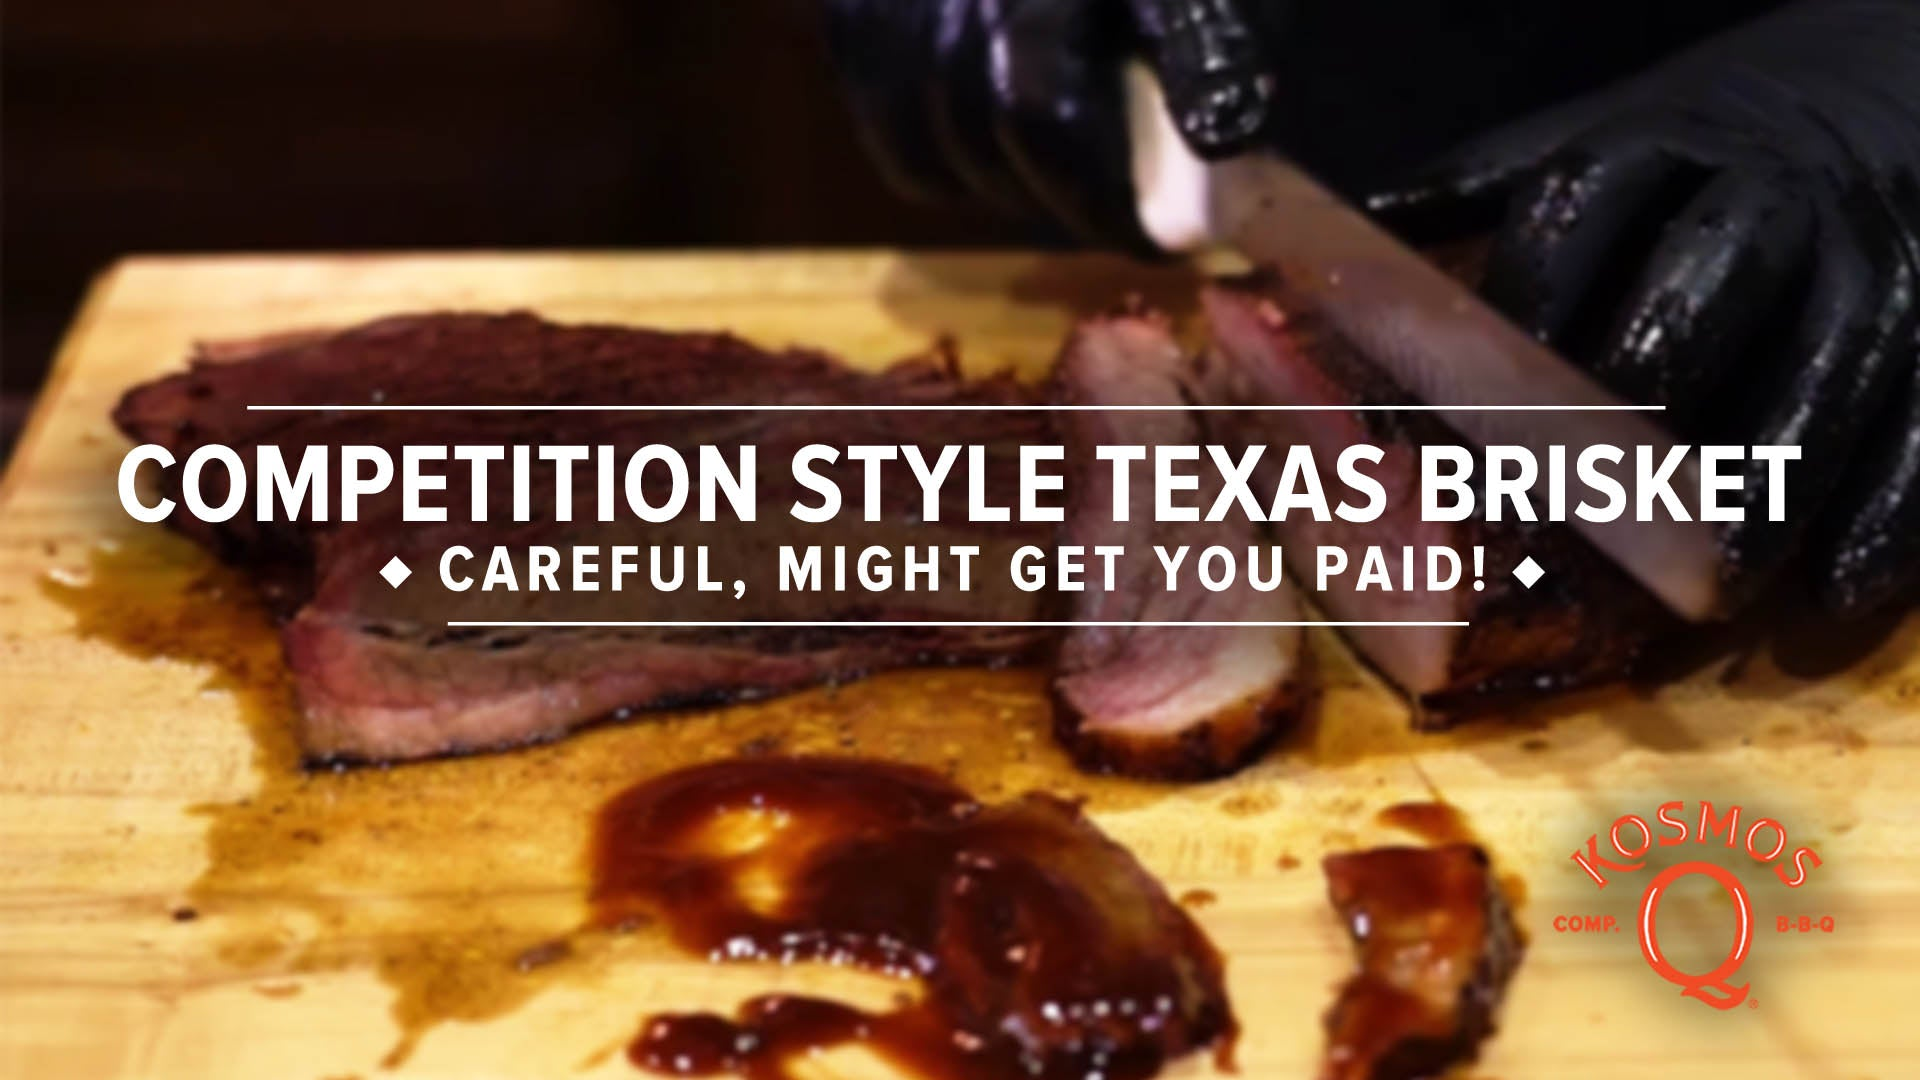 The PERFECT Competition Texas Brisket!